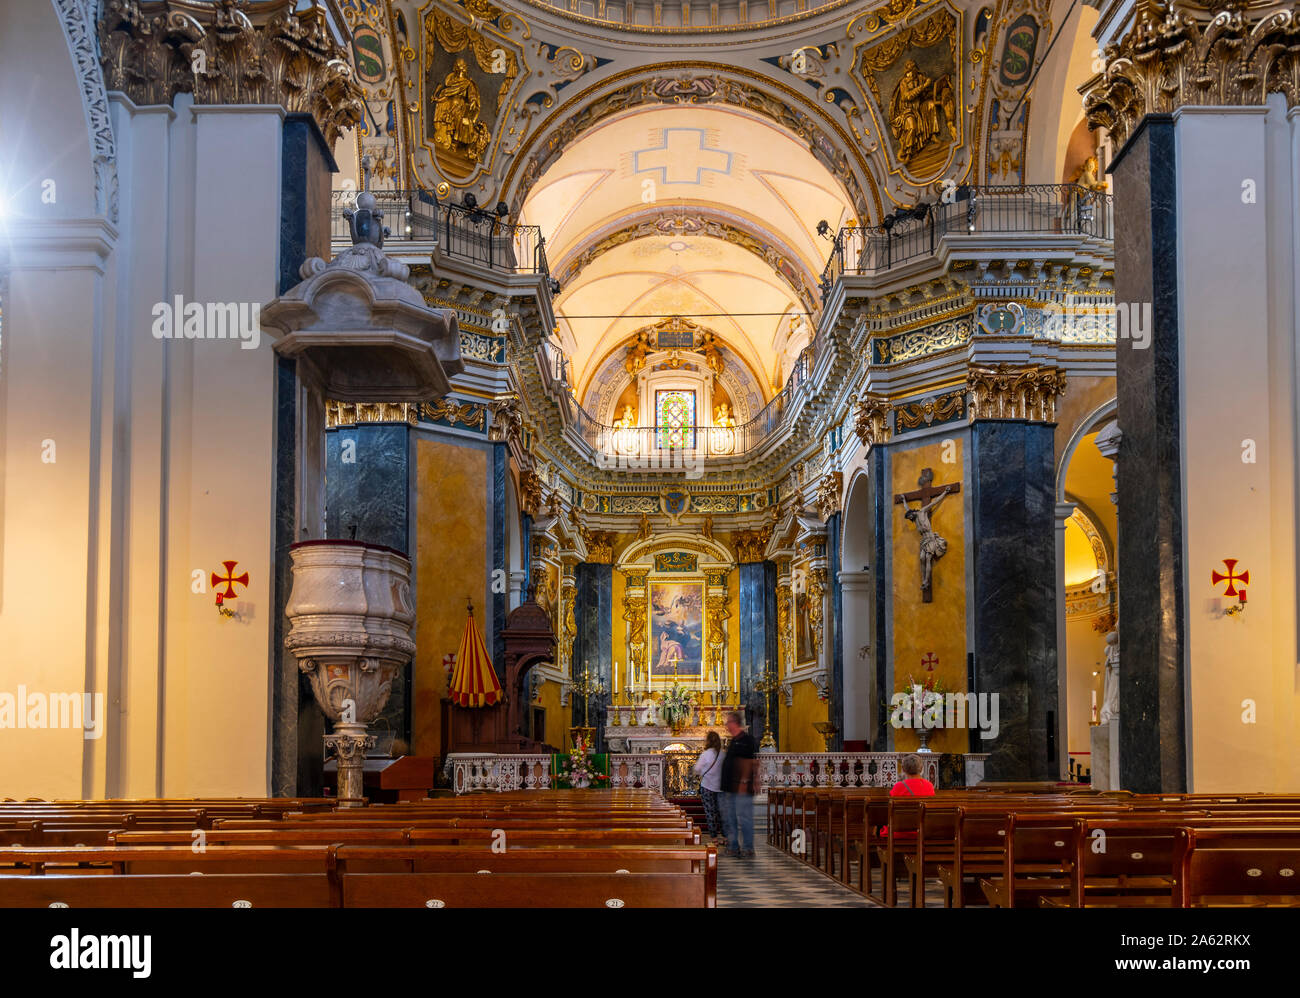 One of the 10 interior chapels inside the baroque Sainte Reparate Cathedral, the Cathedral of Nice, France. Stock Photo